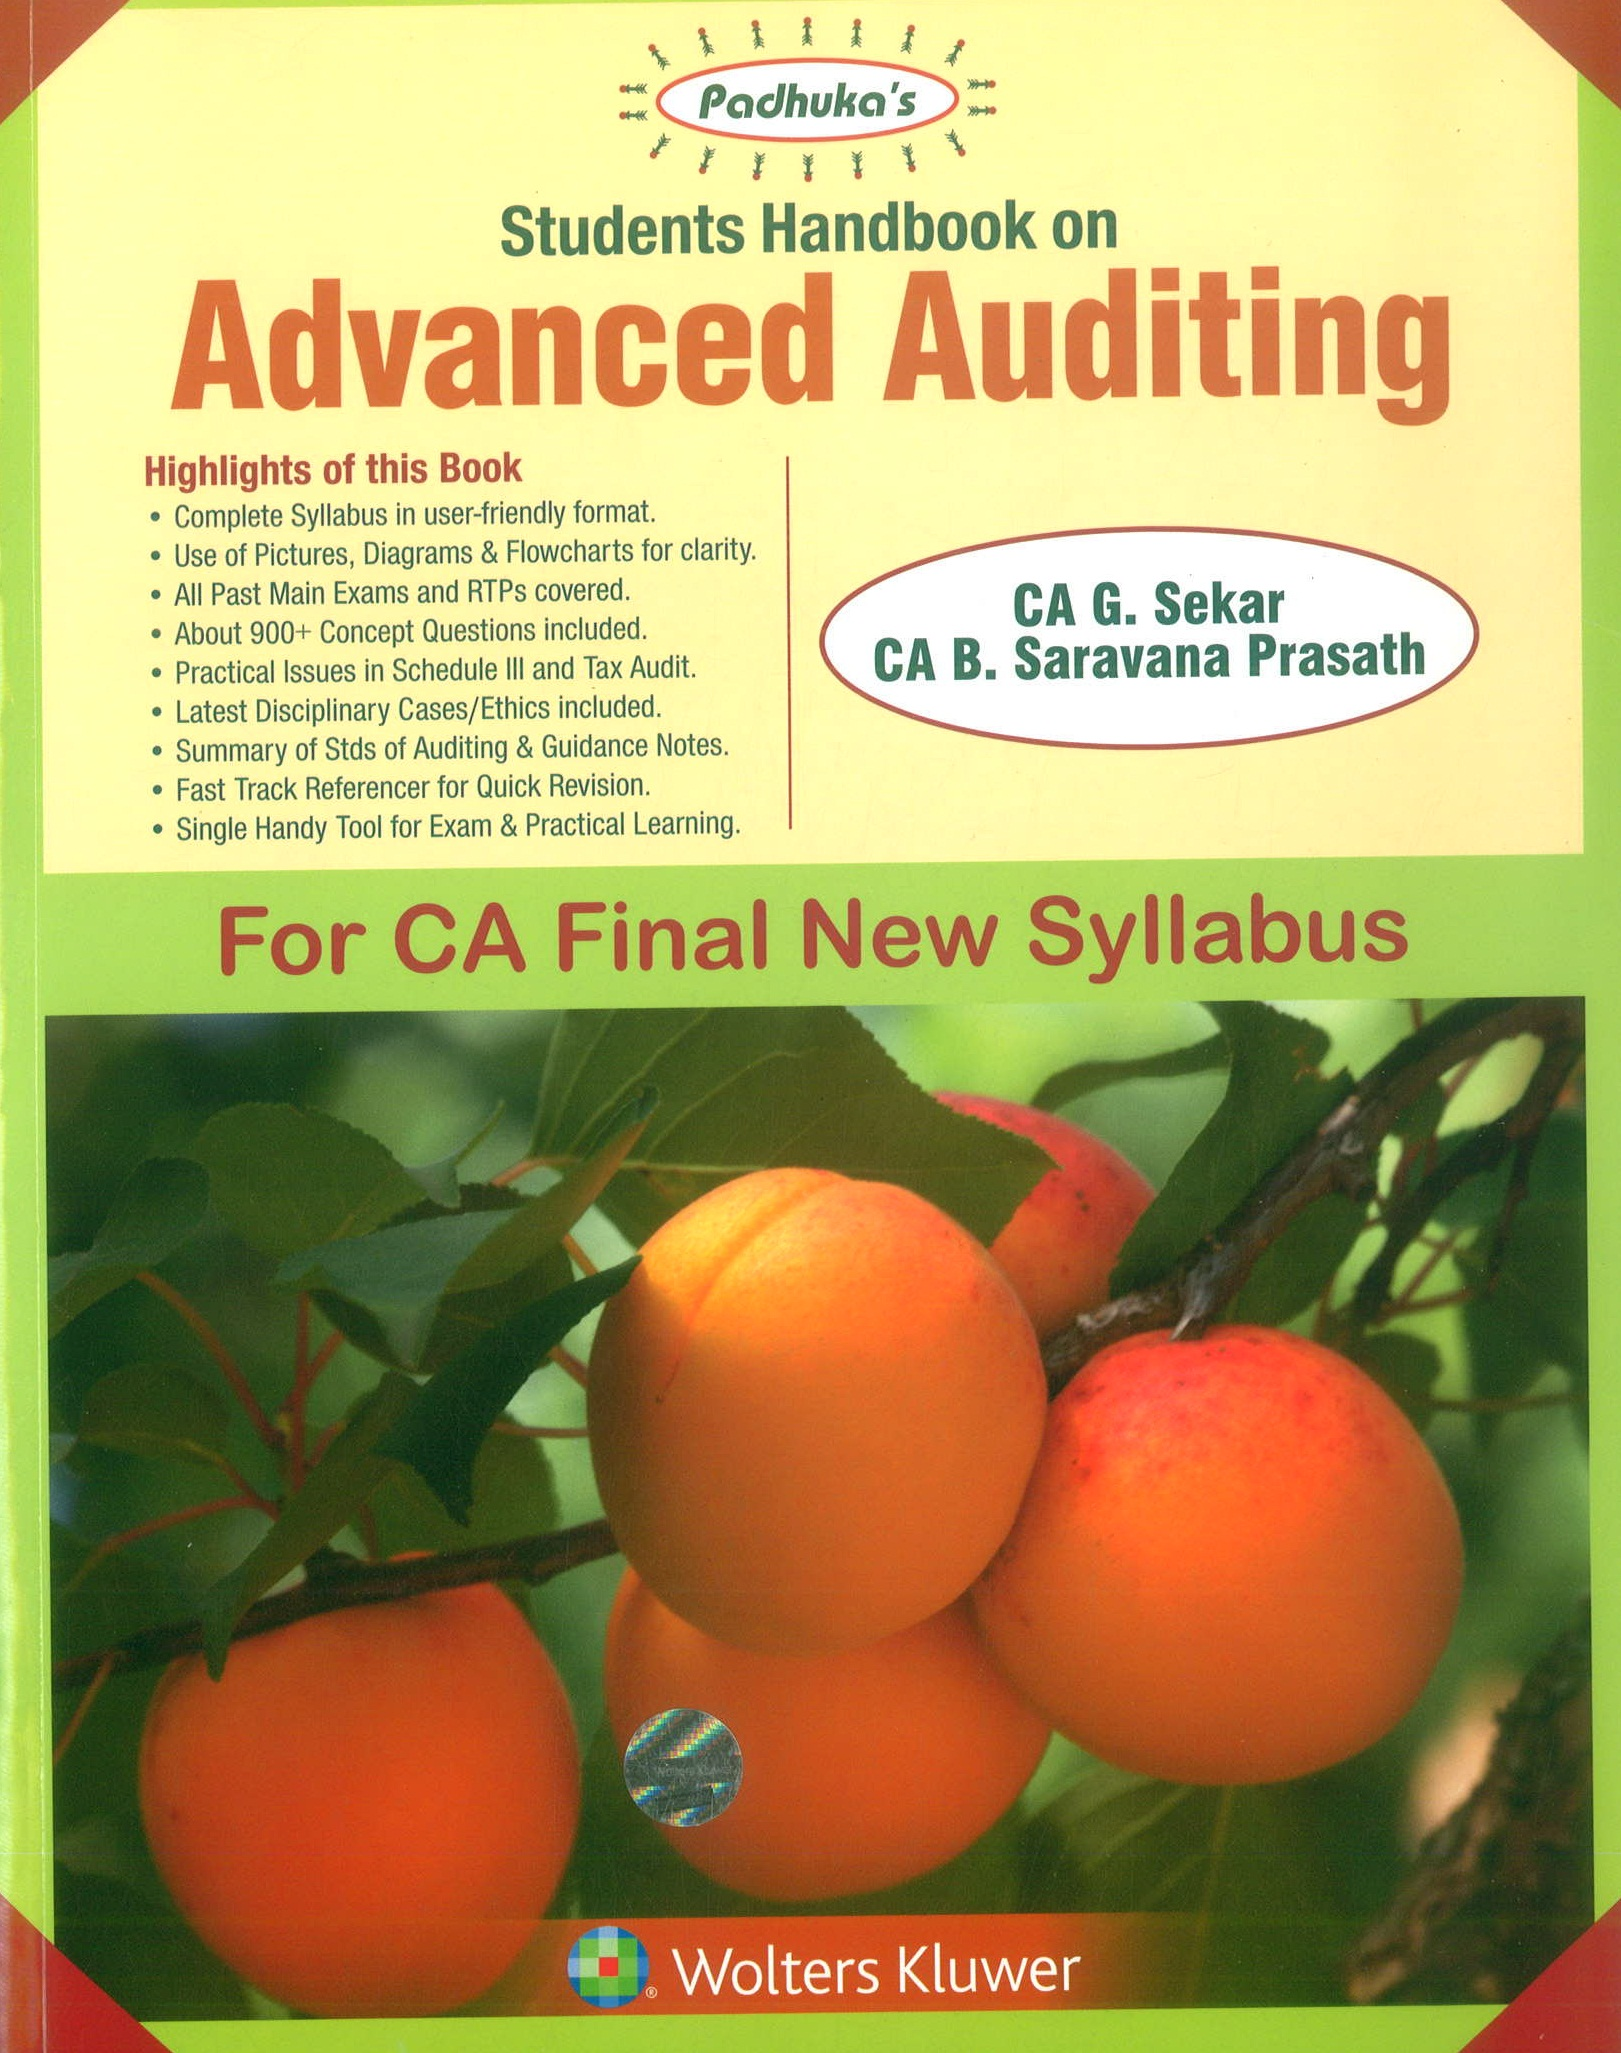 Padhuka's Student Handbook on Advanced Auditing CA Final (New Syllabus) for May 2019 exam by CA G. Sekar and CA B. Saravana Prasath (Wolters Kluwer Publishing) Edition 2019